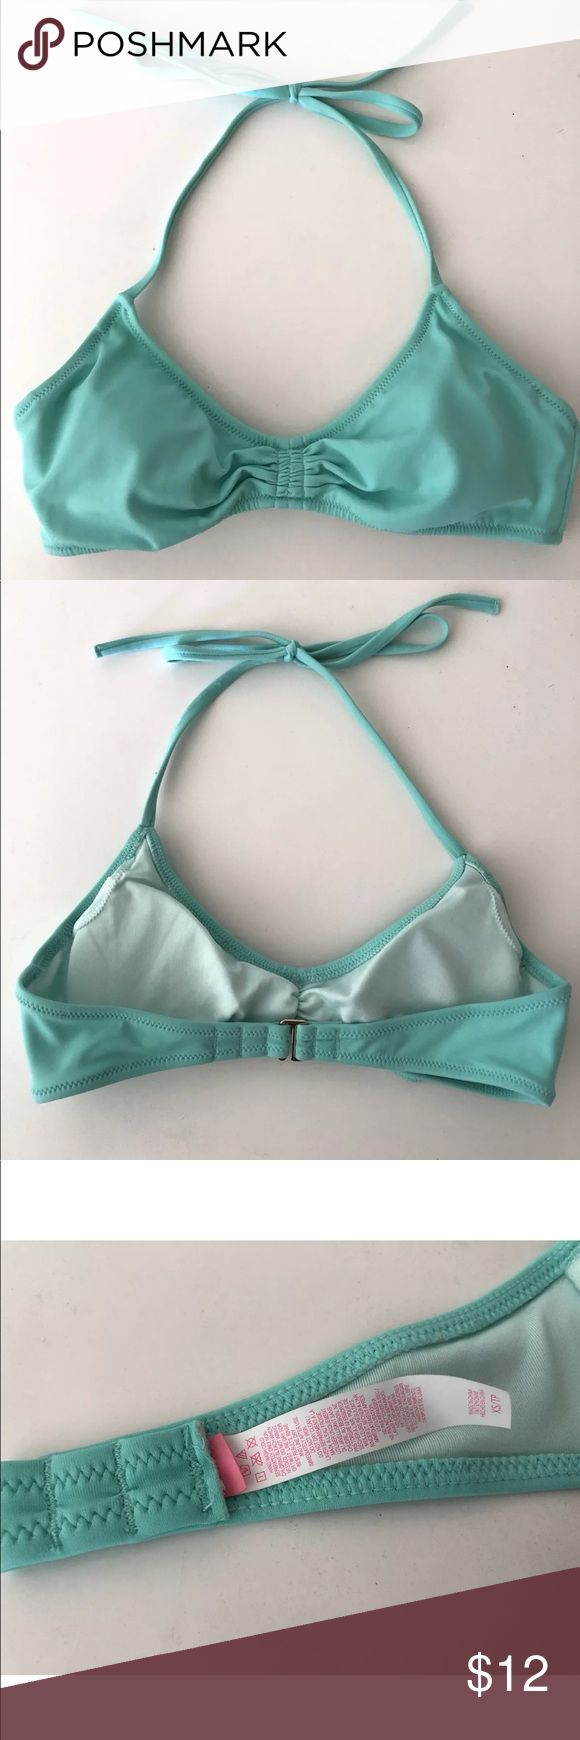 Victoria's Secret Mint Green Halter Bikini Top XS Victoria's Secret halter style bikini swim top with ruched detail at center, V shaped neckline, halter tie straps, 3 slot claw clasp in back and removable cups included. Mint green light turquoise color. Excellent preowned condition , only tried on never wore out - inner VS brand tag has been removed but care instructions and content tag remain. Victoria's Secret Swim Bikinis